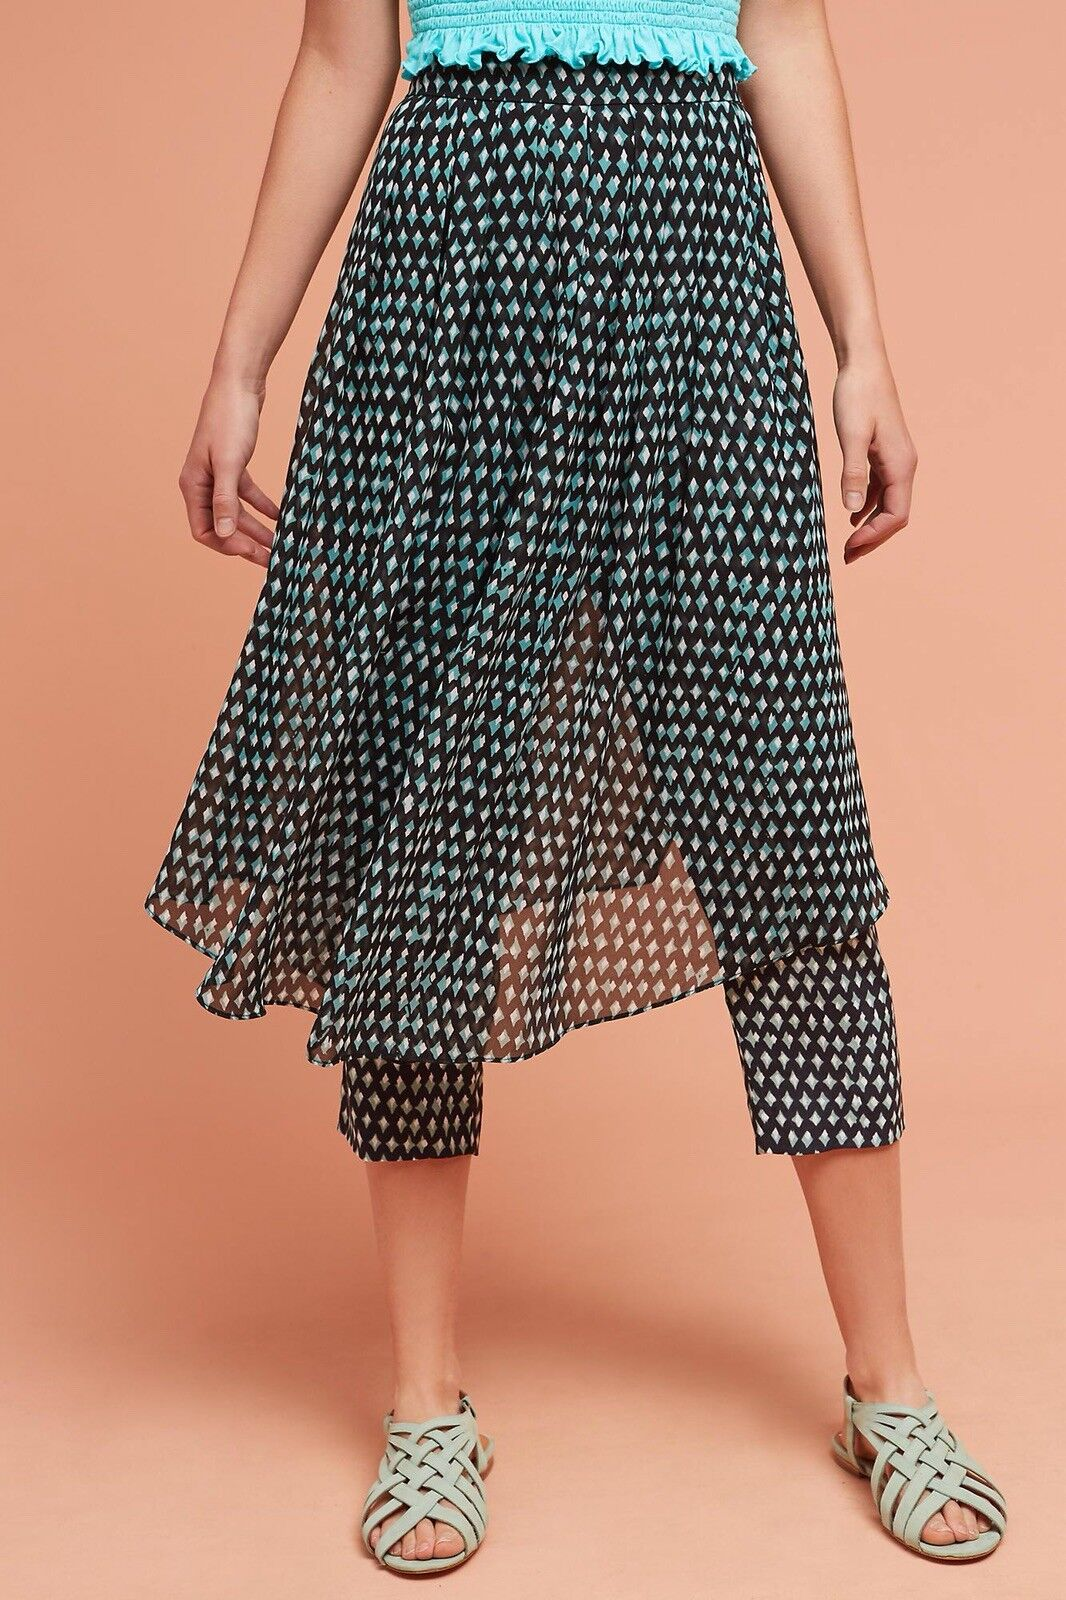 Anthropologie HD In Paris Skirted Waterfront Pants Geometric Pattern Size 6  118